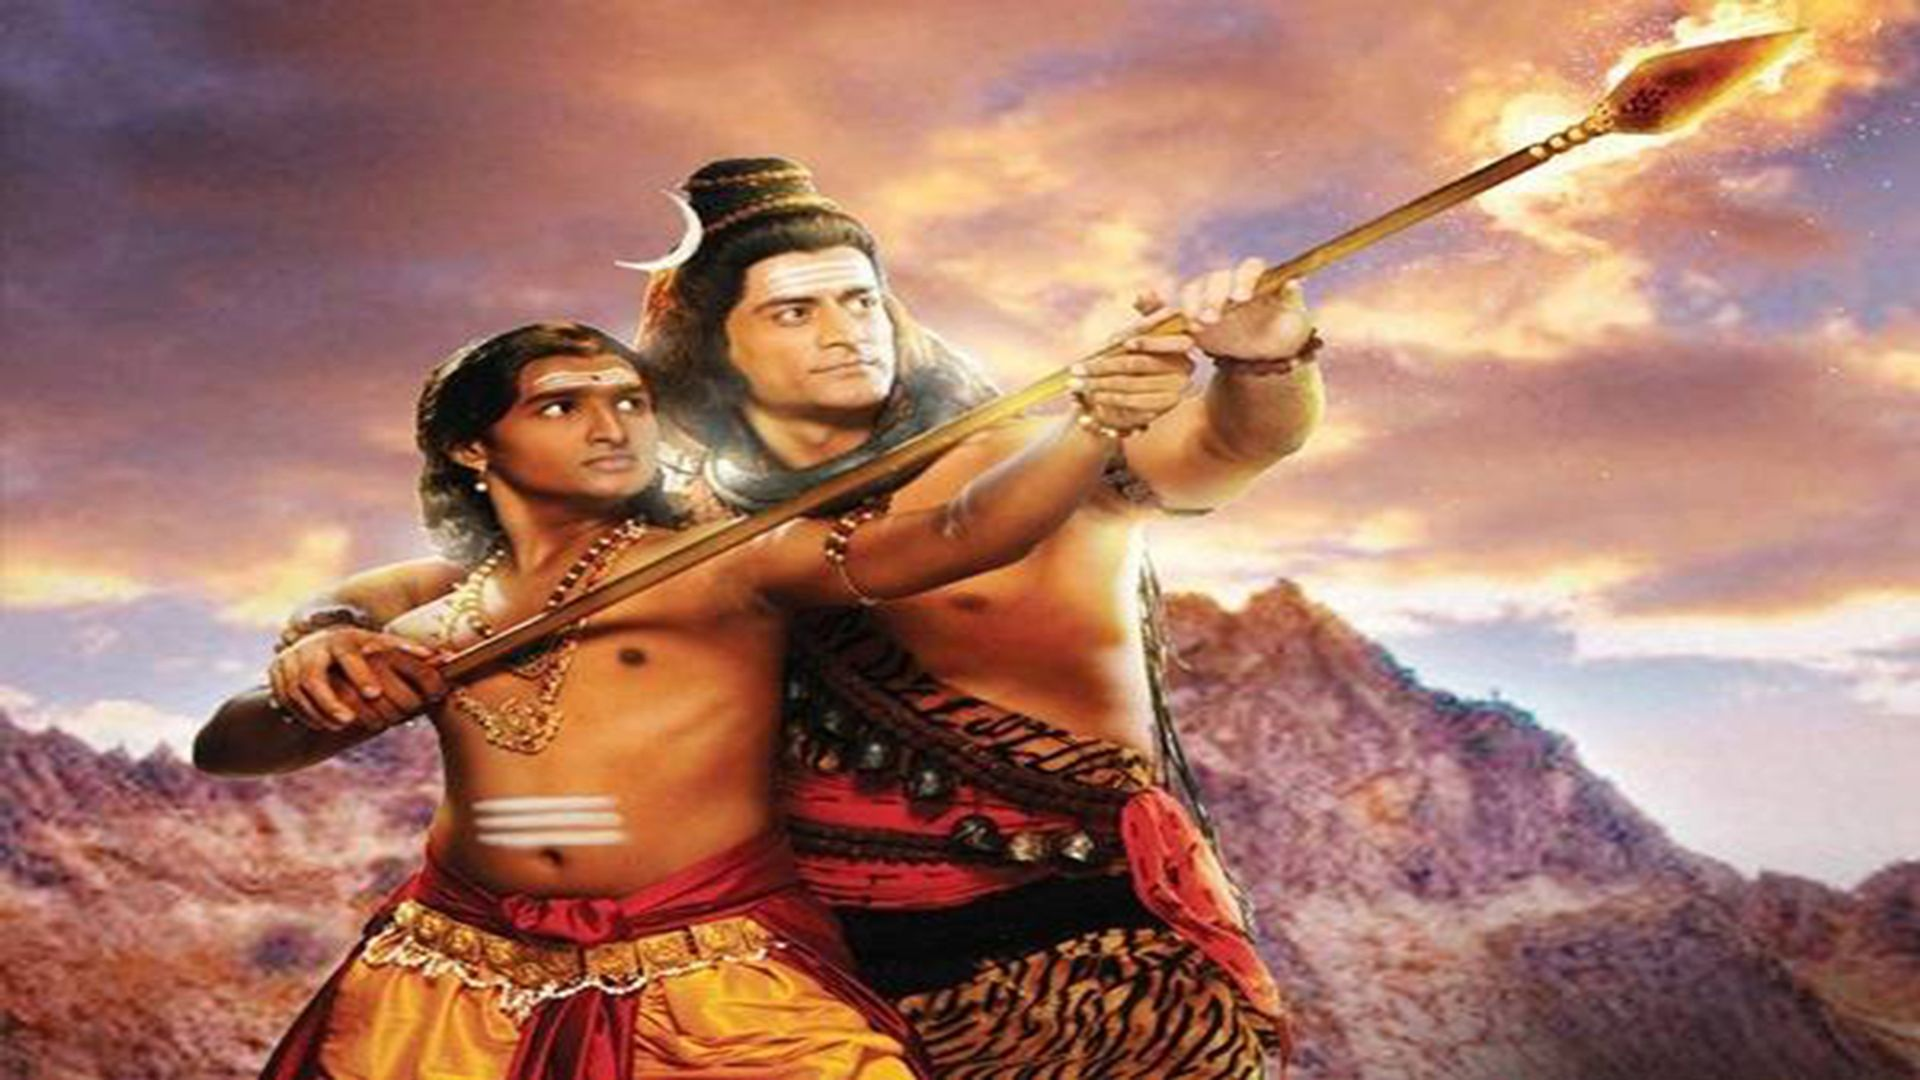 Season 18, Episode 09 Mahadev Tells Ravana That He Sees Ego In His Devotion